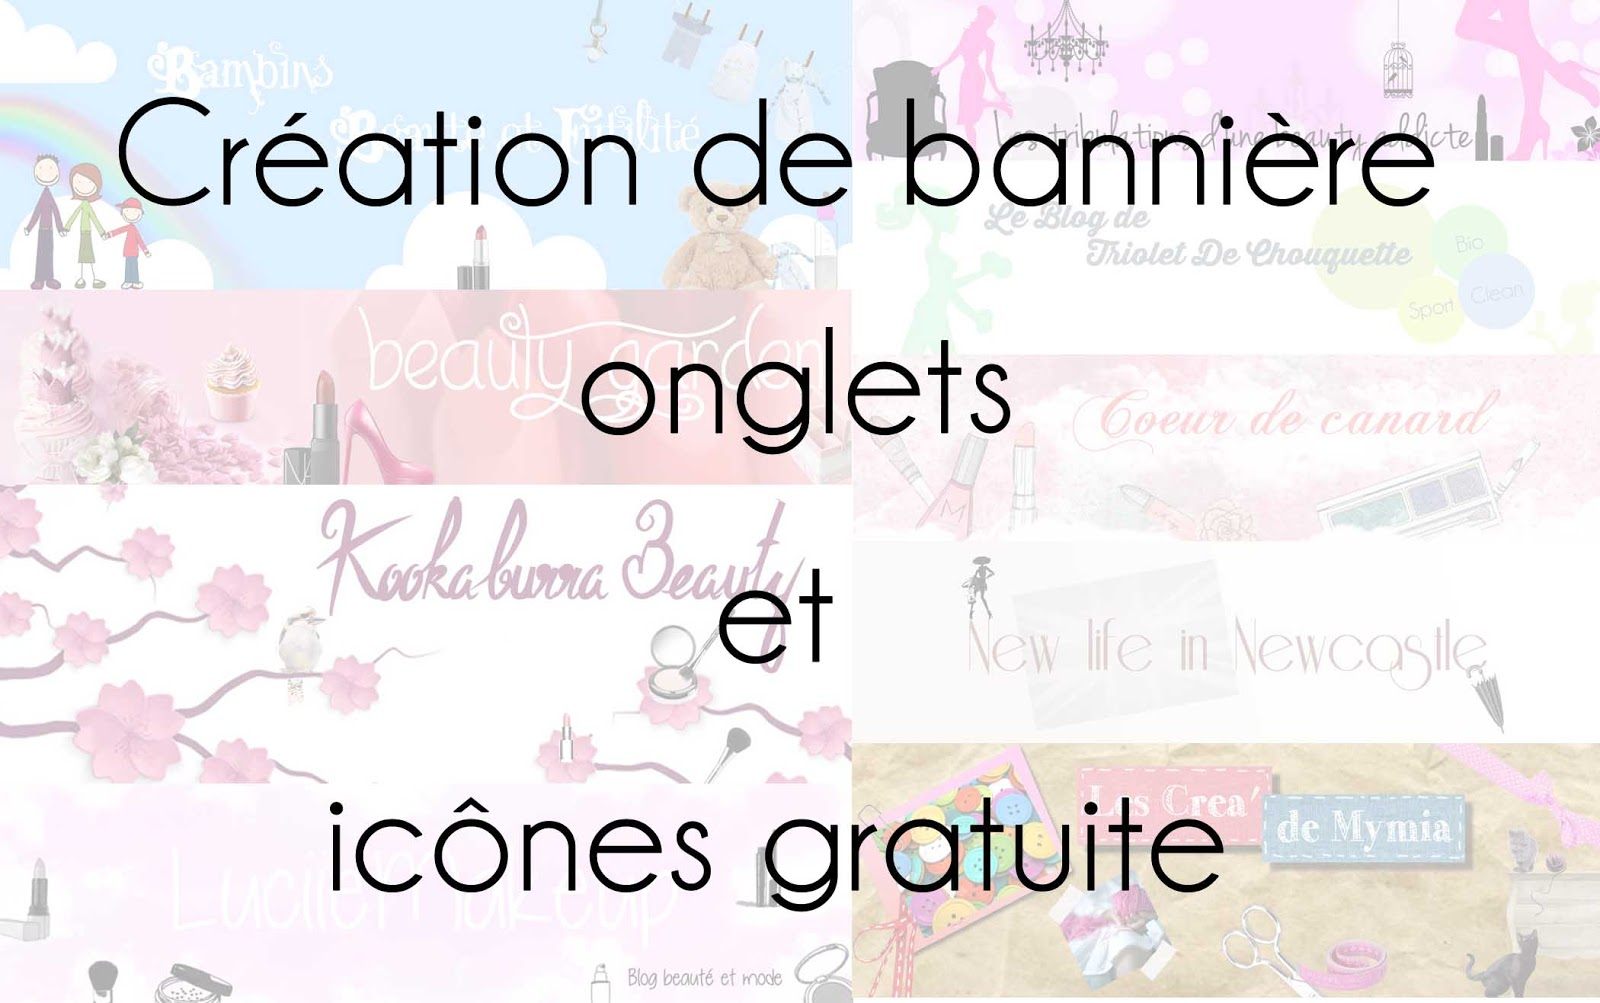 cr u00e9ation de banni u00e8re gratuite pour ton blog